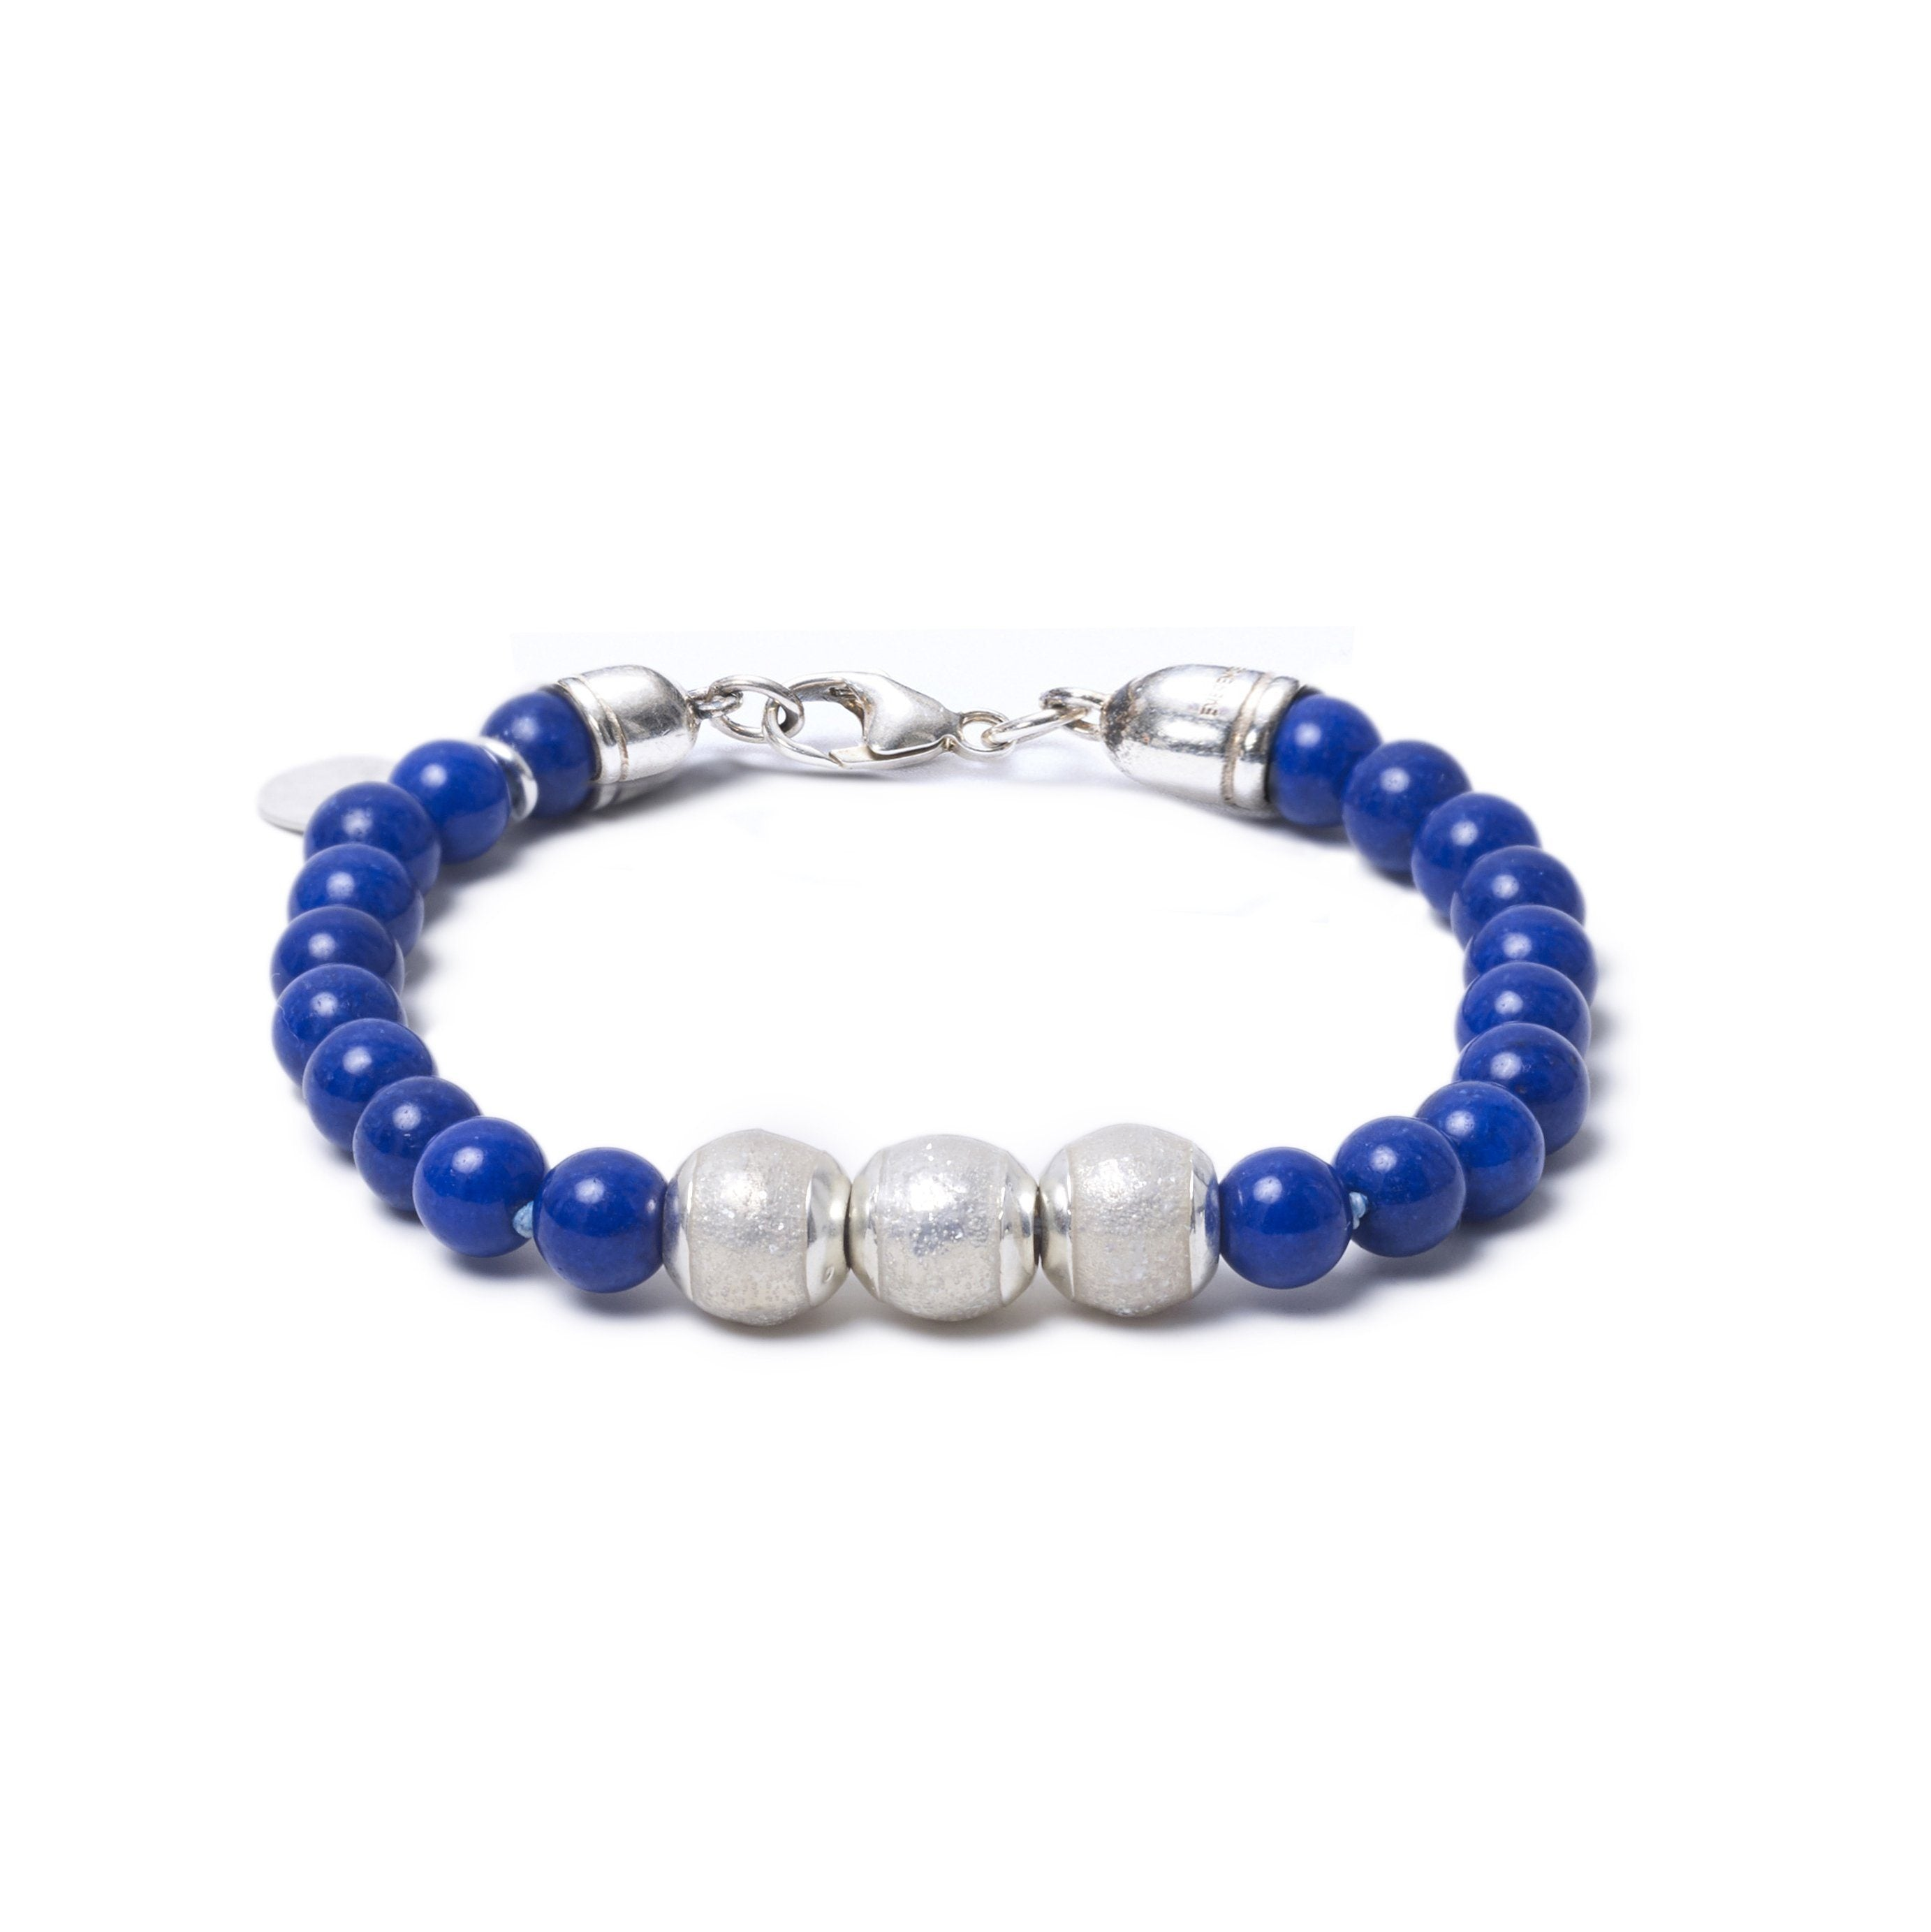 Lapis Lazuli, Three Everence Beads everence.life Clear Lobster Claw 7